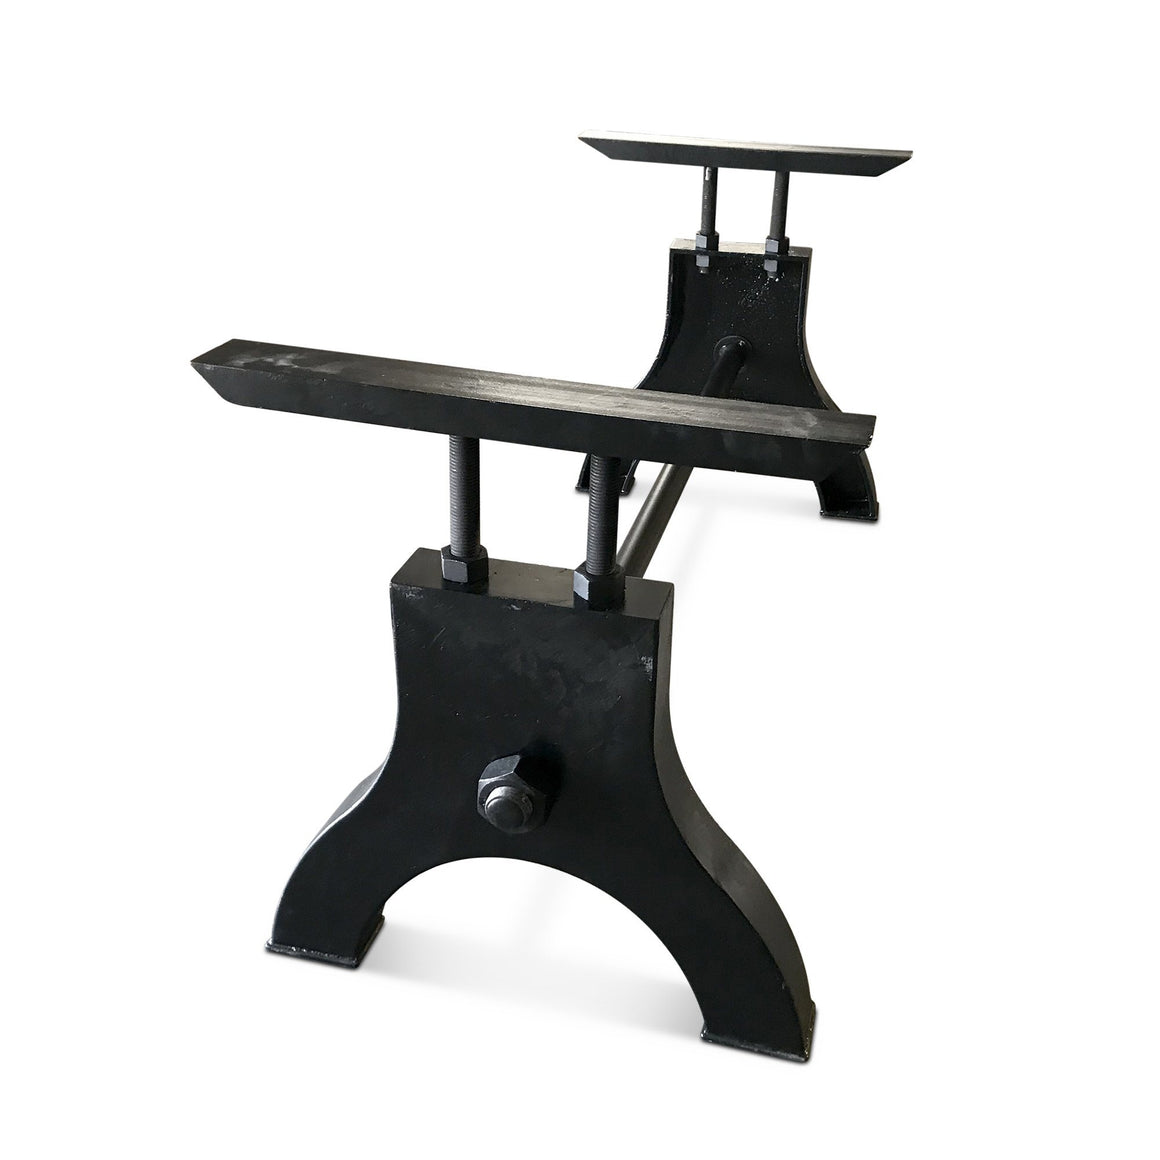 Industrial Table Base Cast Iron Adjustable Height Desk - Hure Inspired-Rustic Deco Incorporated